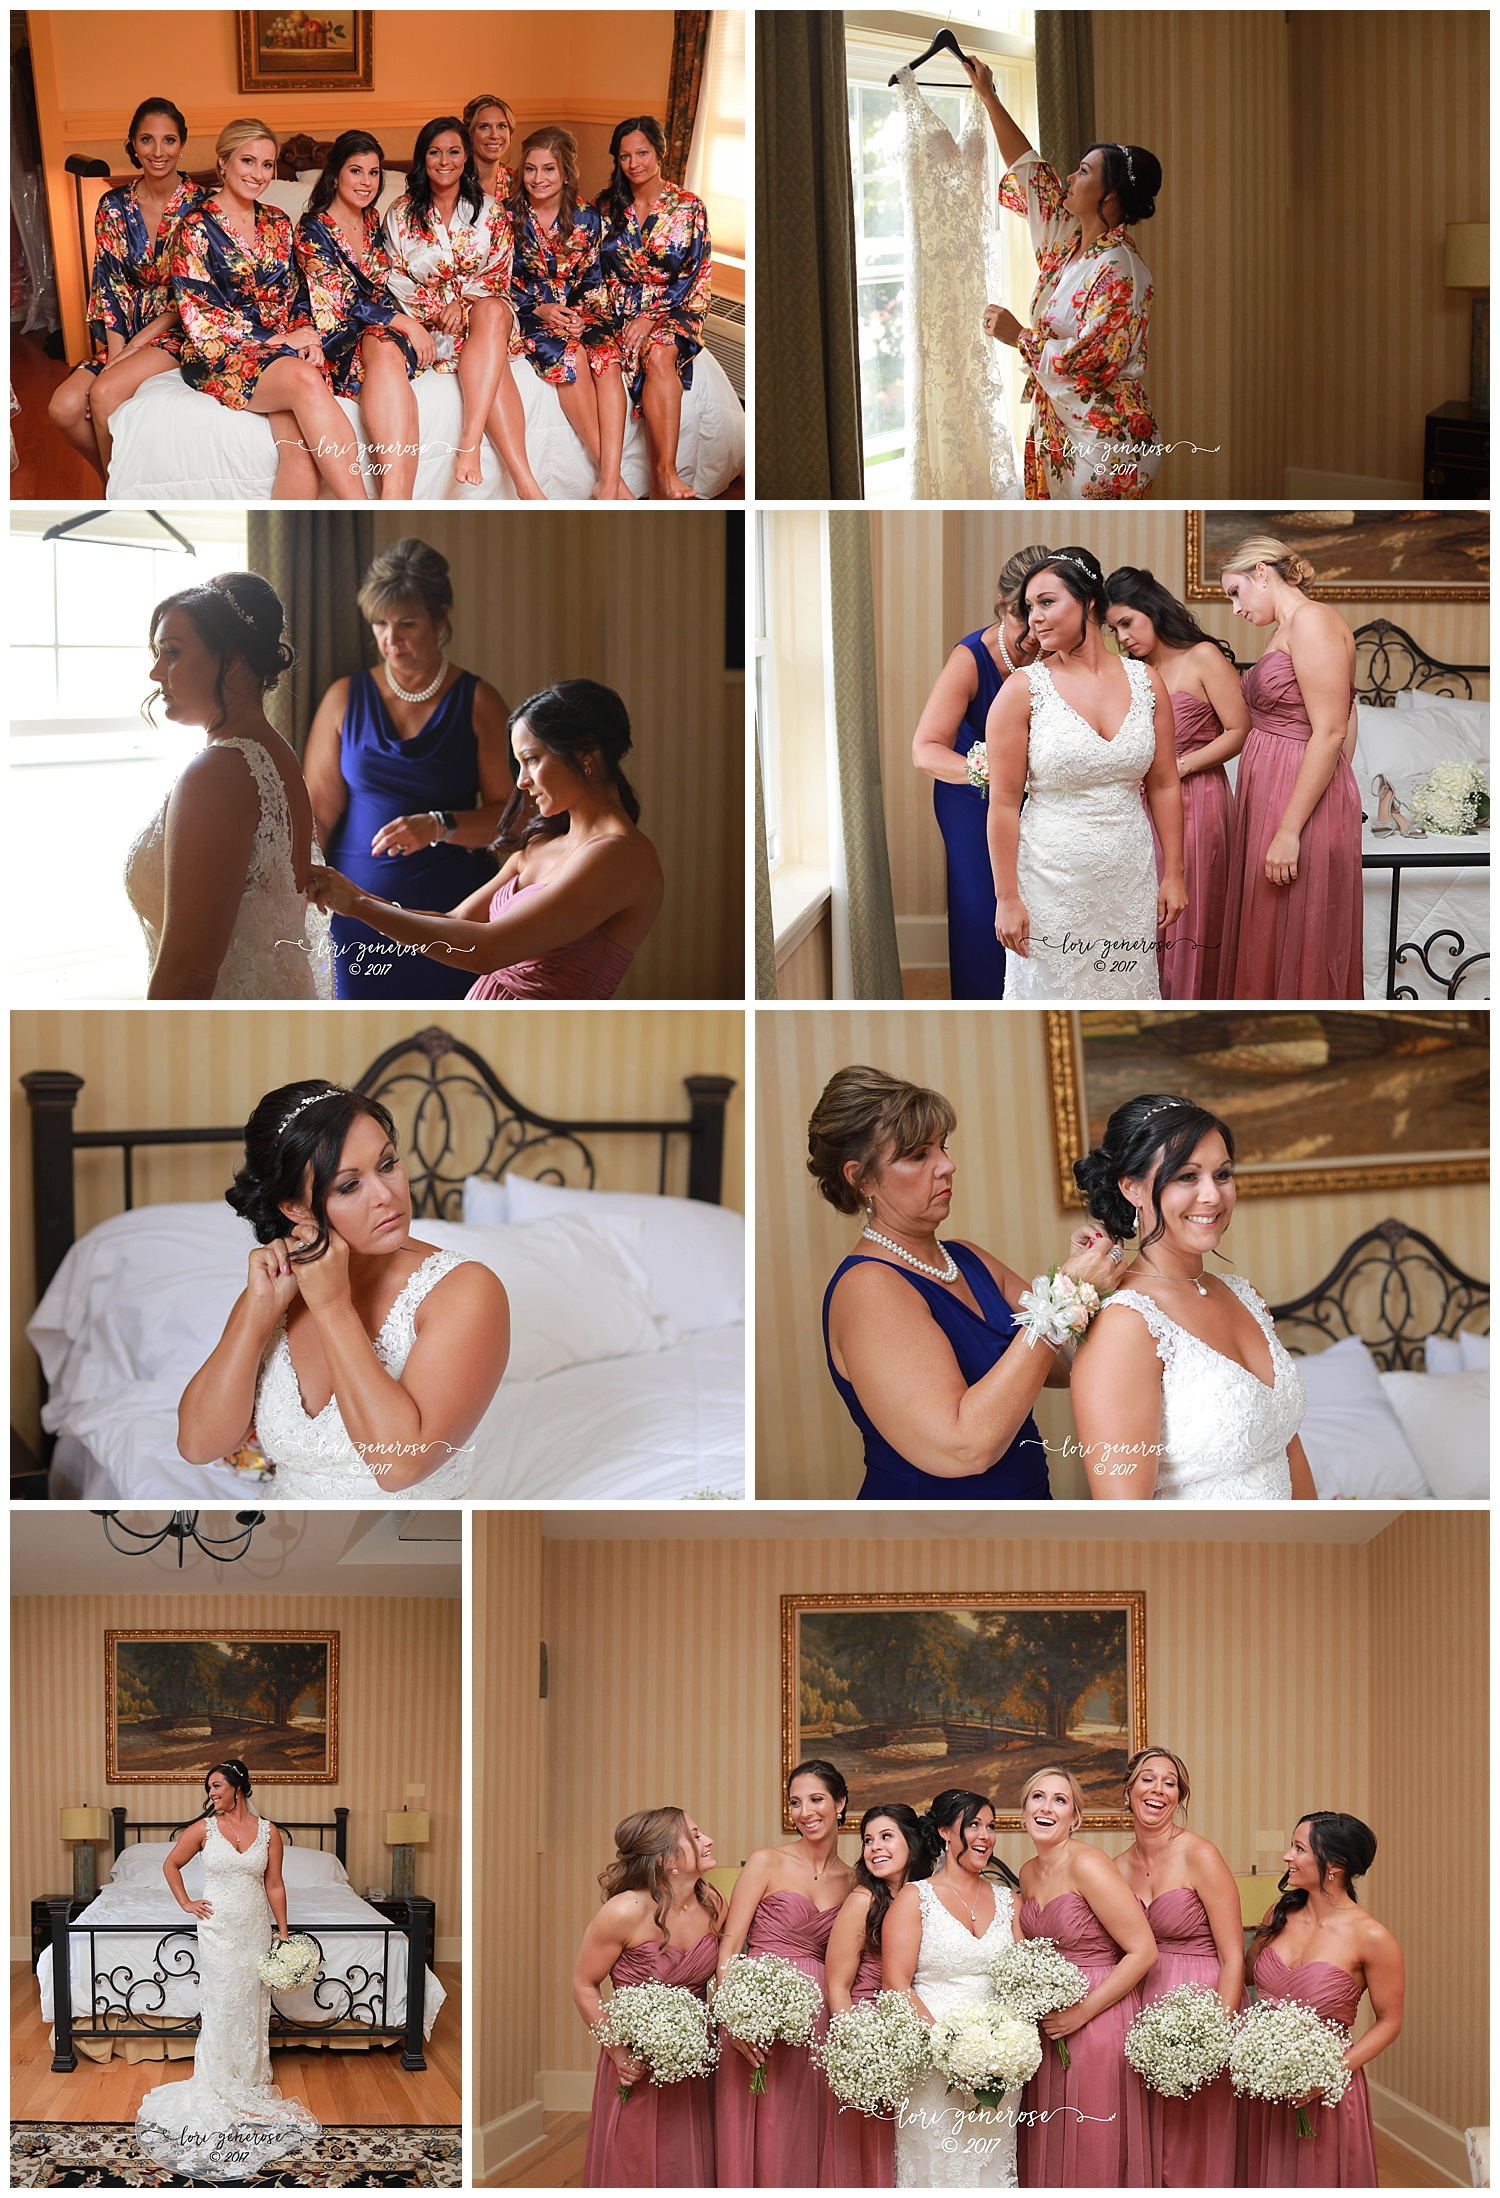 brideandbridesmaidsgettingreadydressflowersbrideputtingonjewelry.jpg